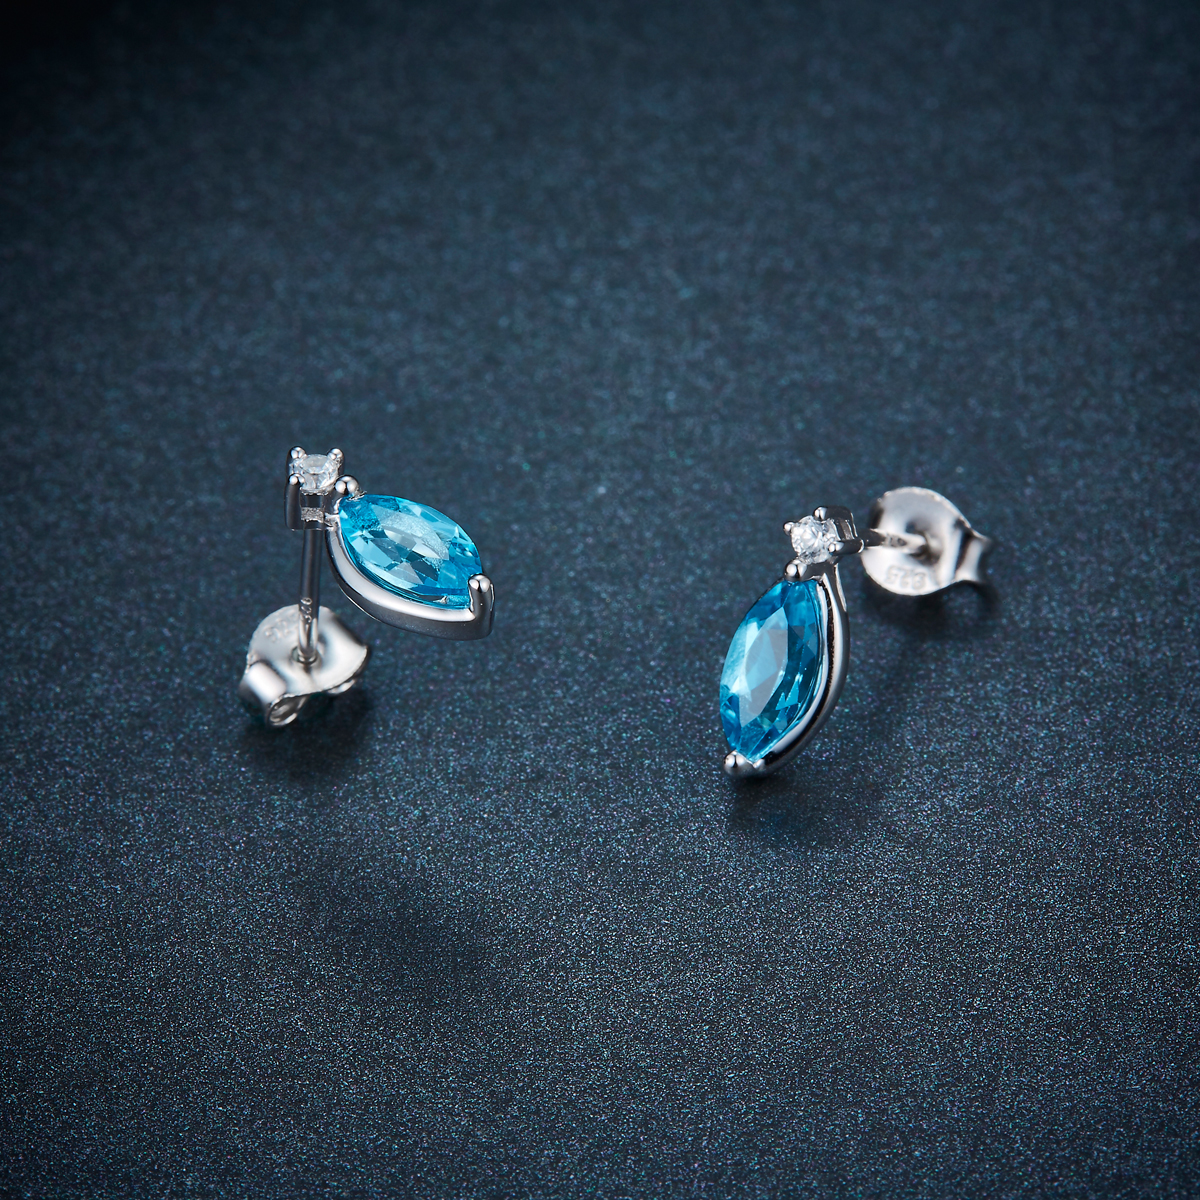 цены Hutang Marquise cut 8x4mm Swiss Blue Topaz Stud Earrings Solid 925 Sterling Silver Gemstone Fine Jewelry Women Girl Gift